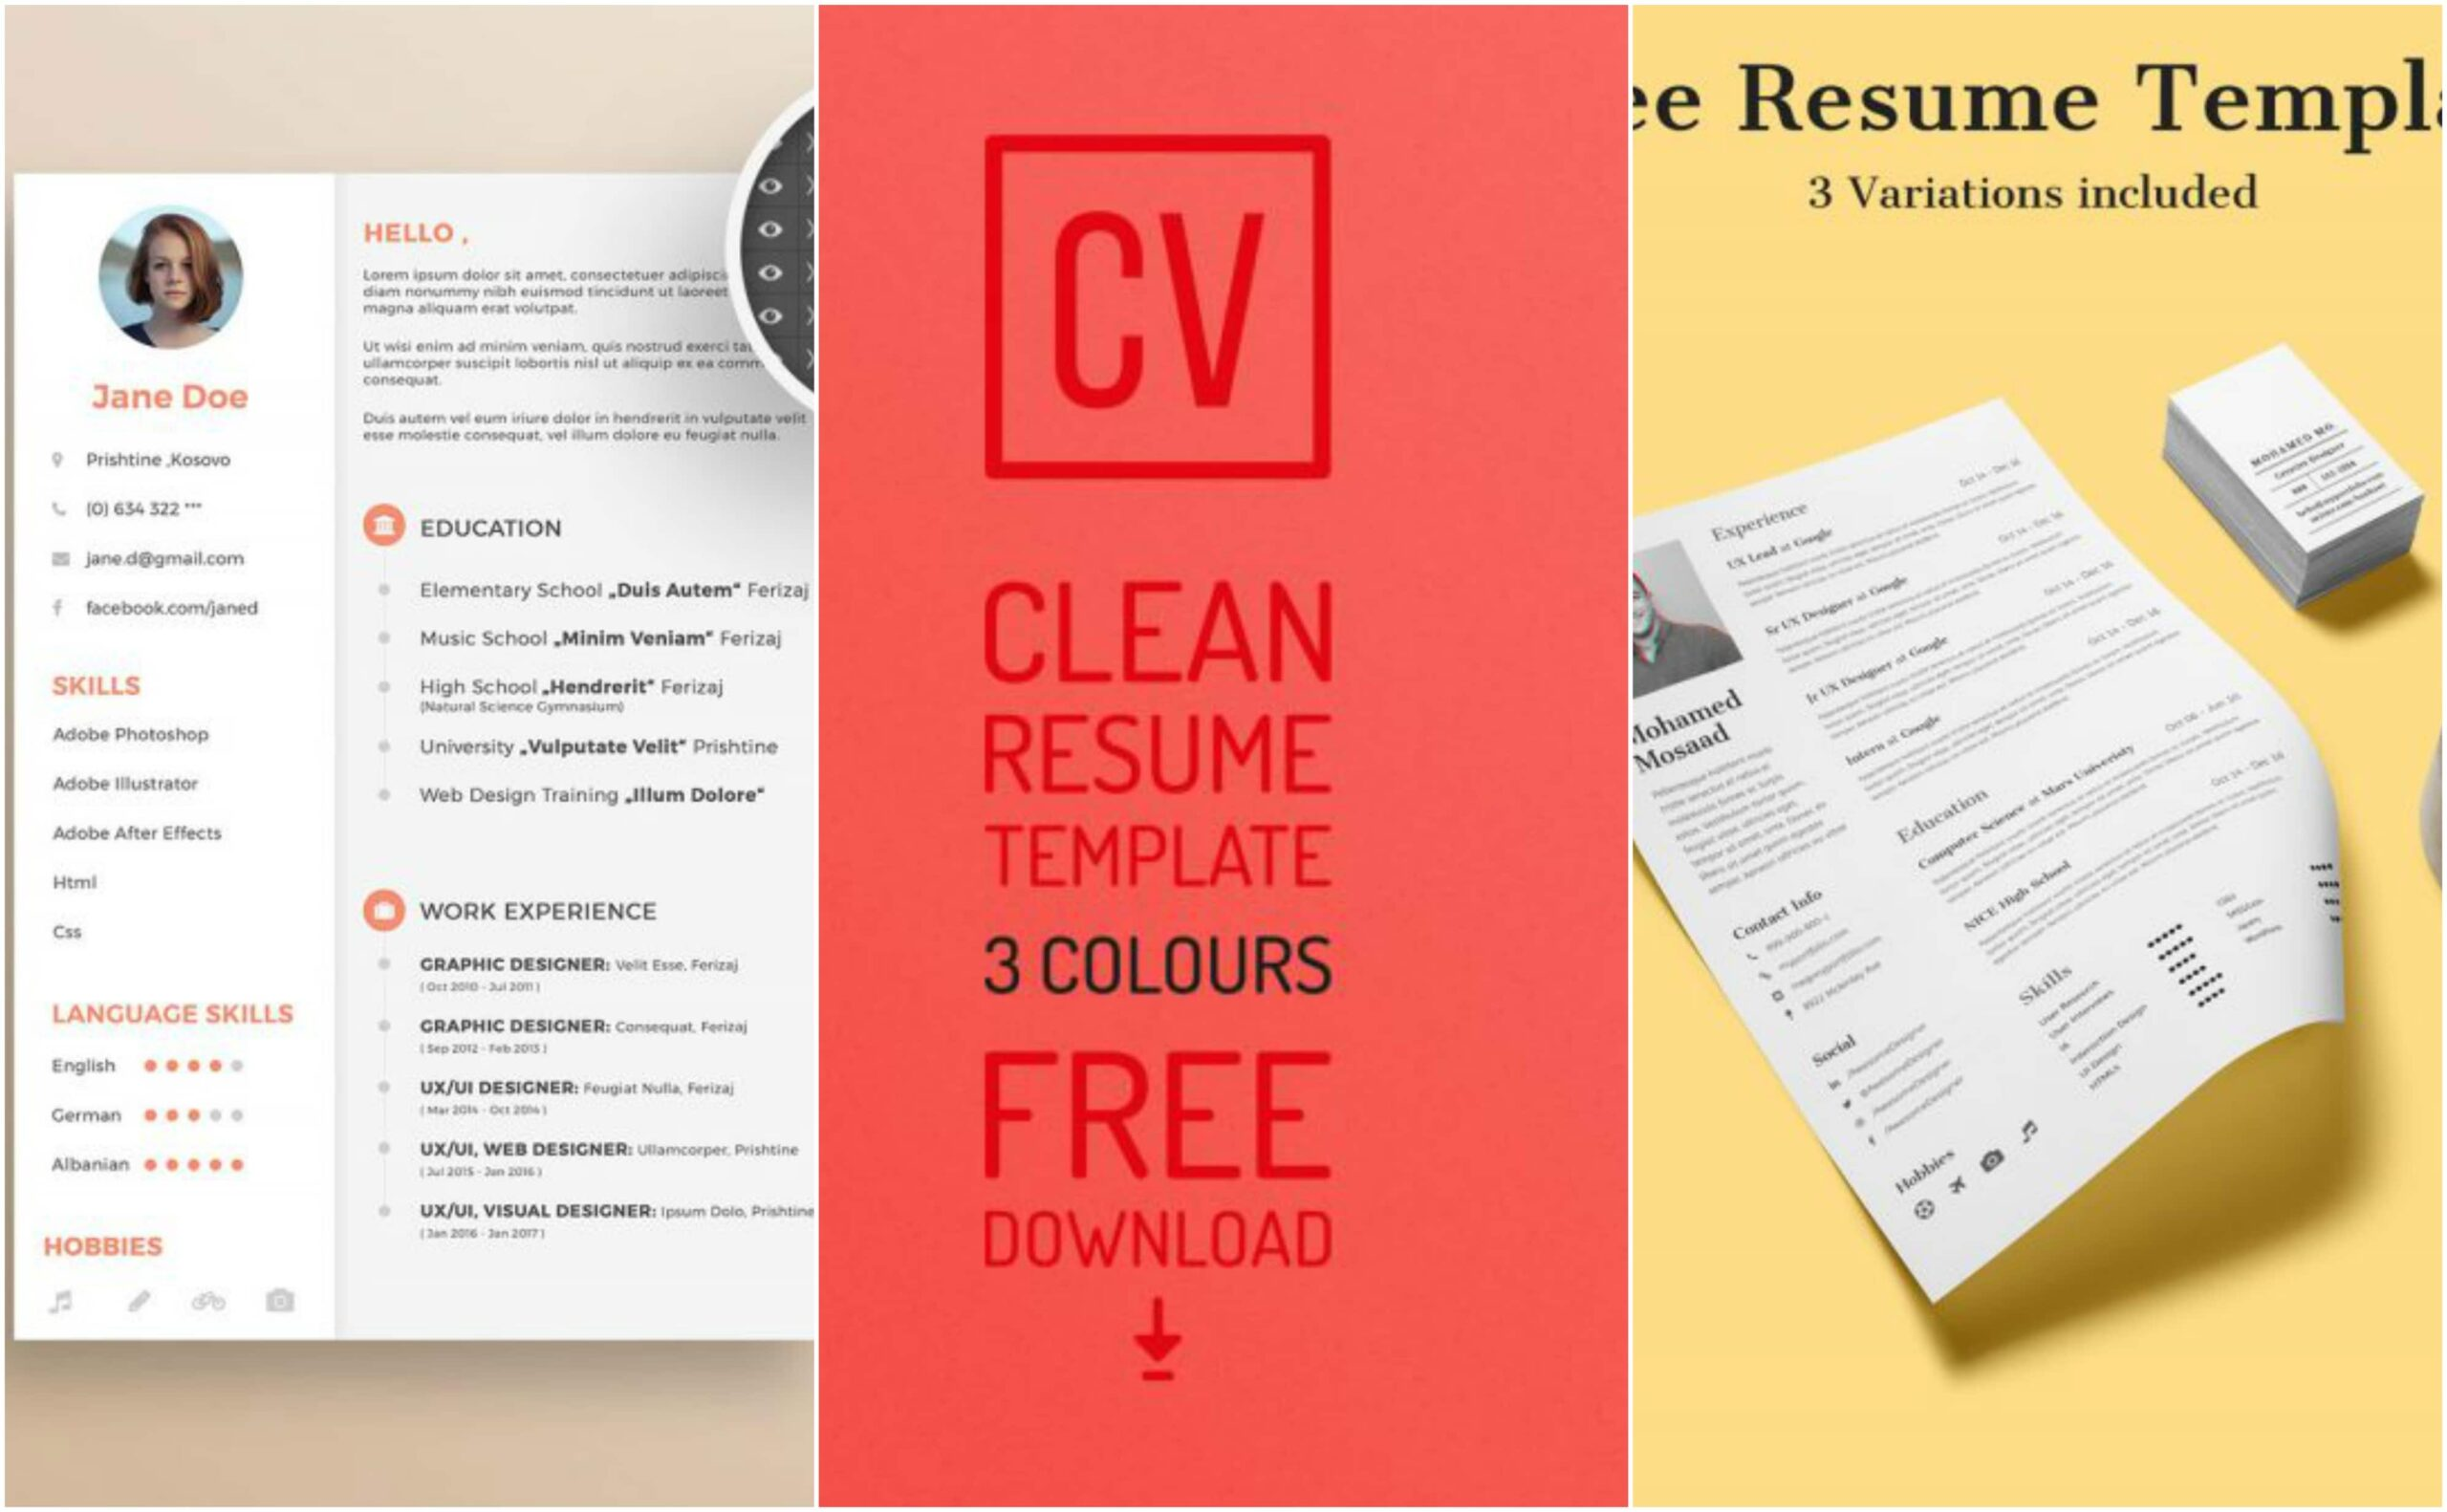 free resume templates for your next application inspirationfeed examples trackid sp Resume Resume Examples Trackid Sp 006